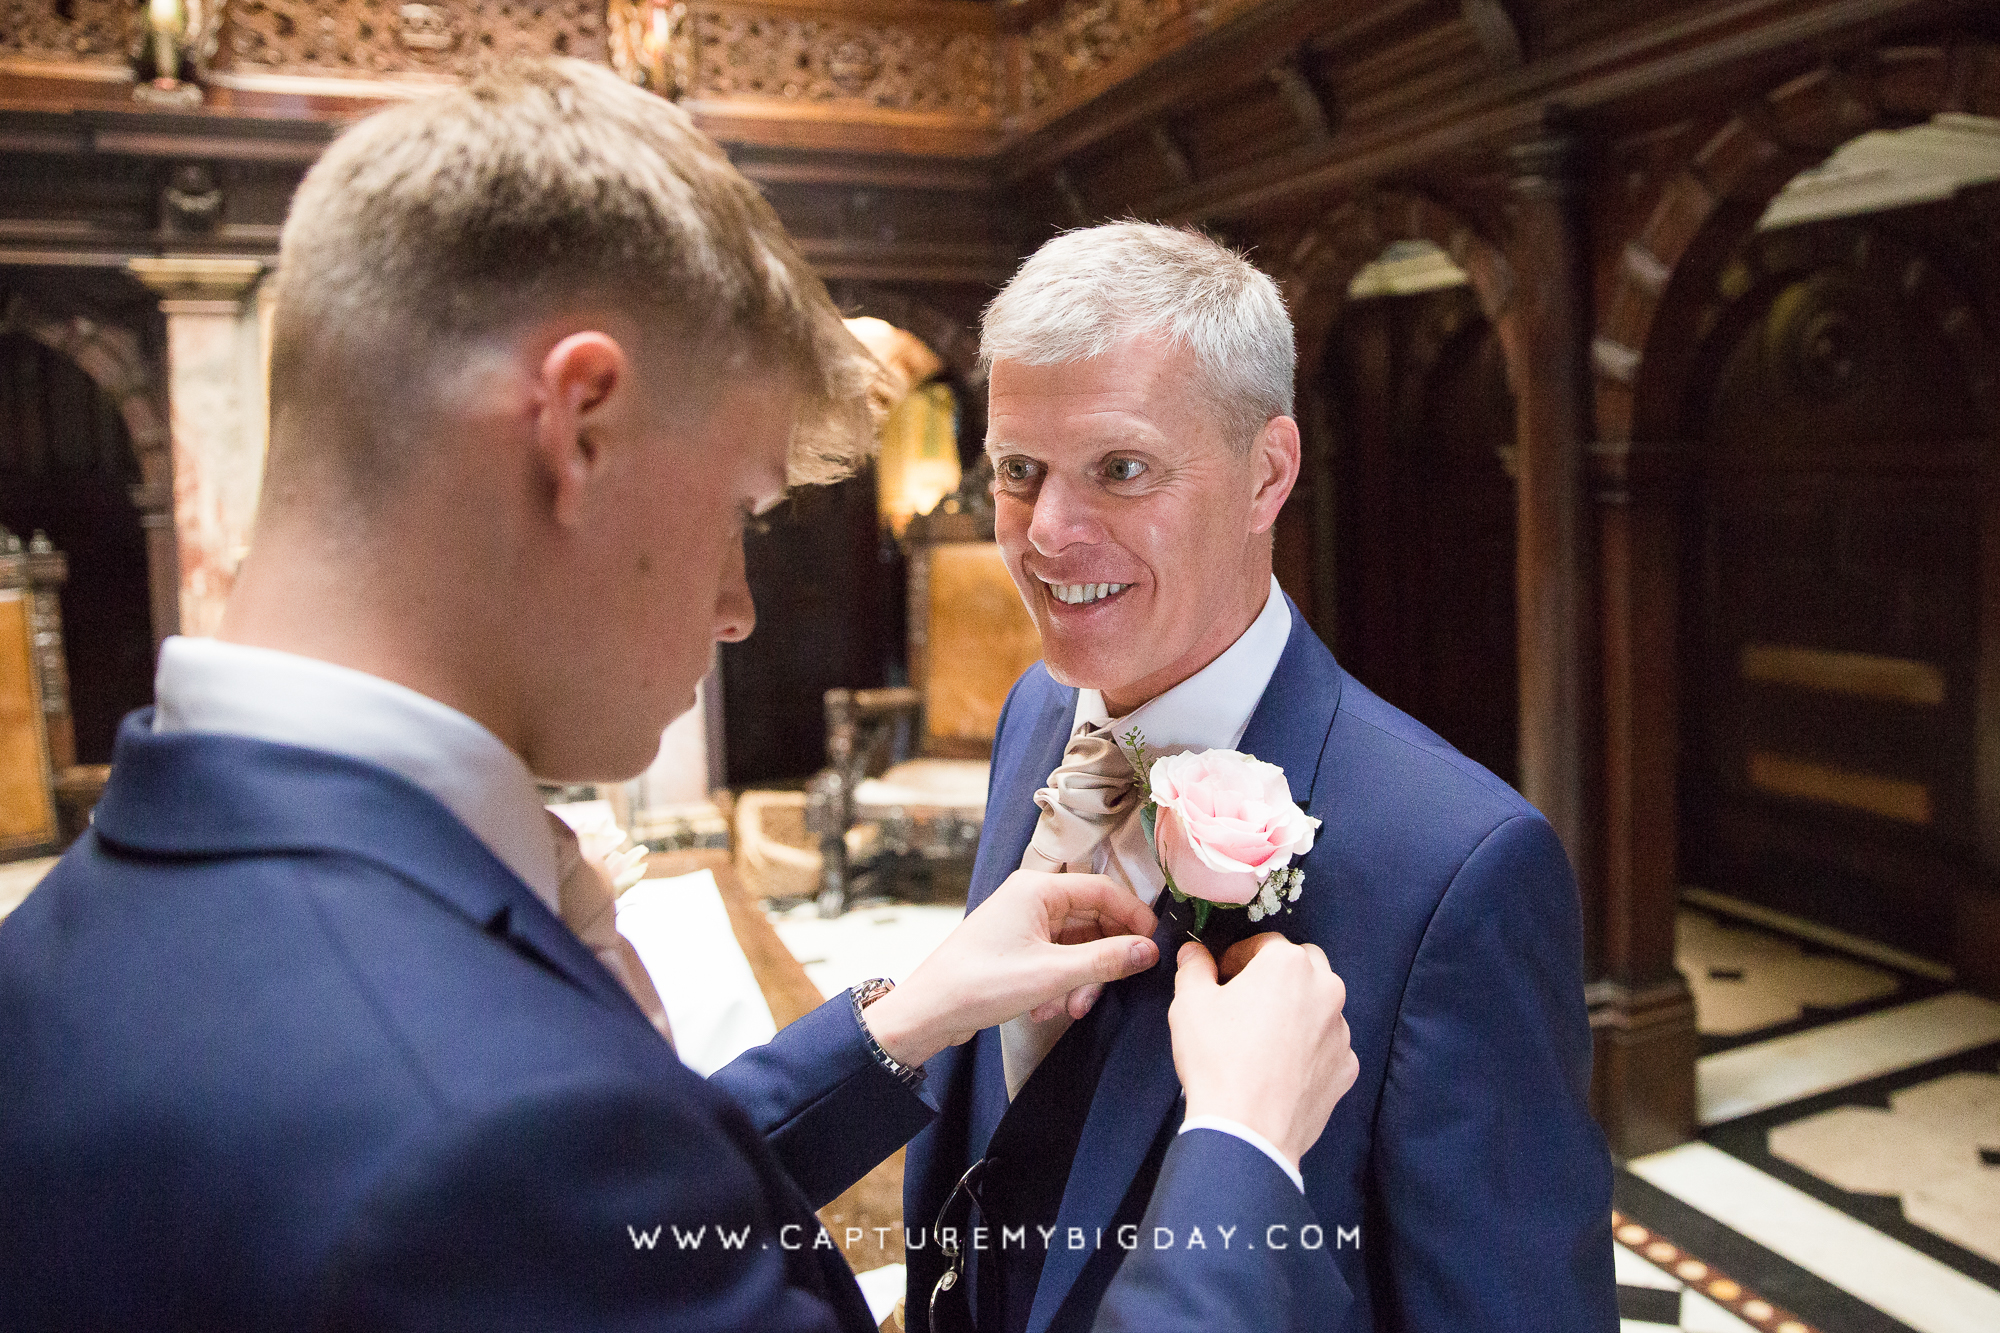 Groom having his buttonhole rose fitted